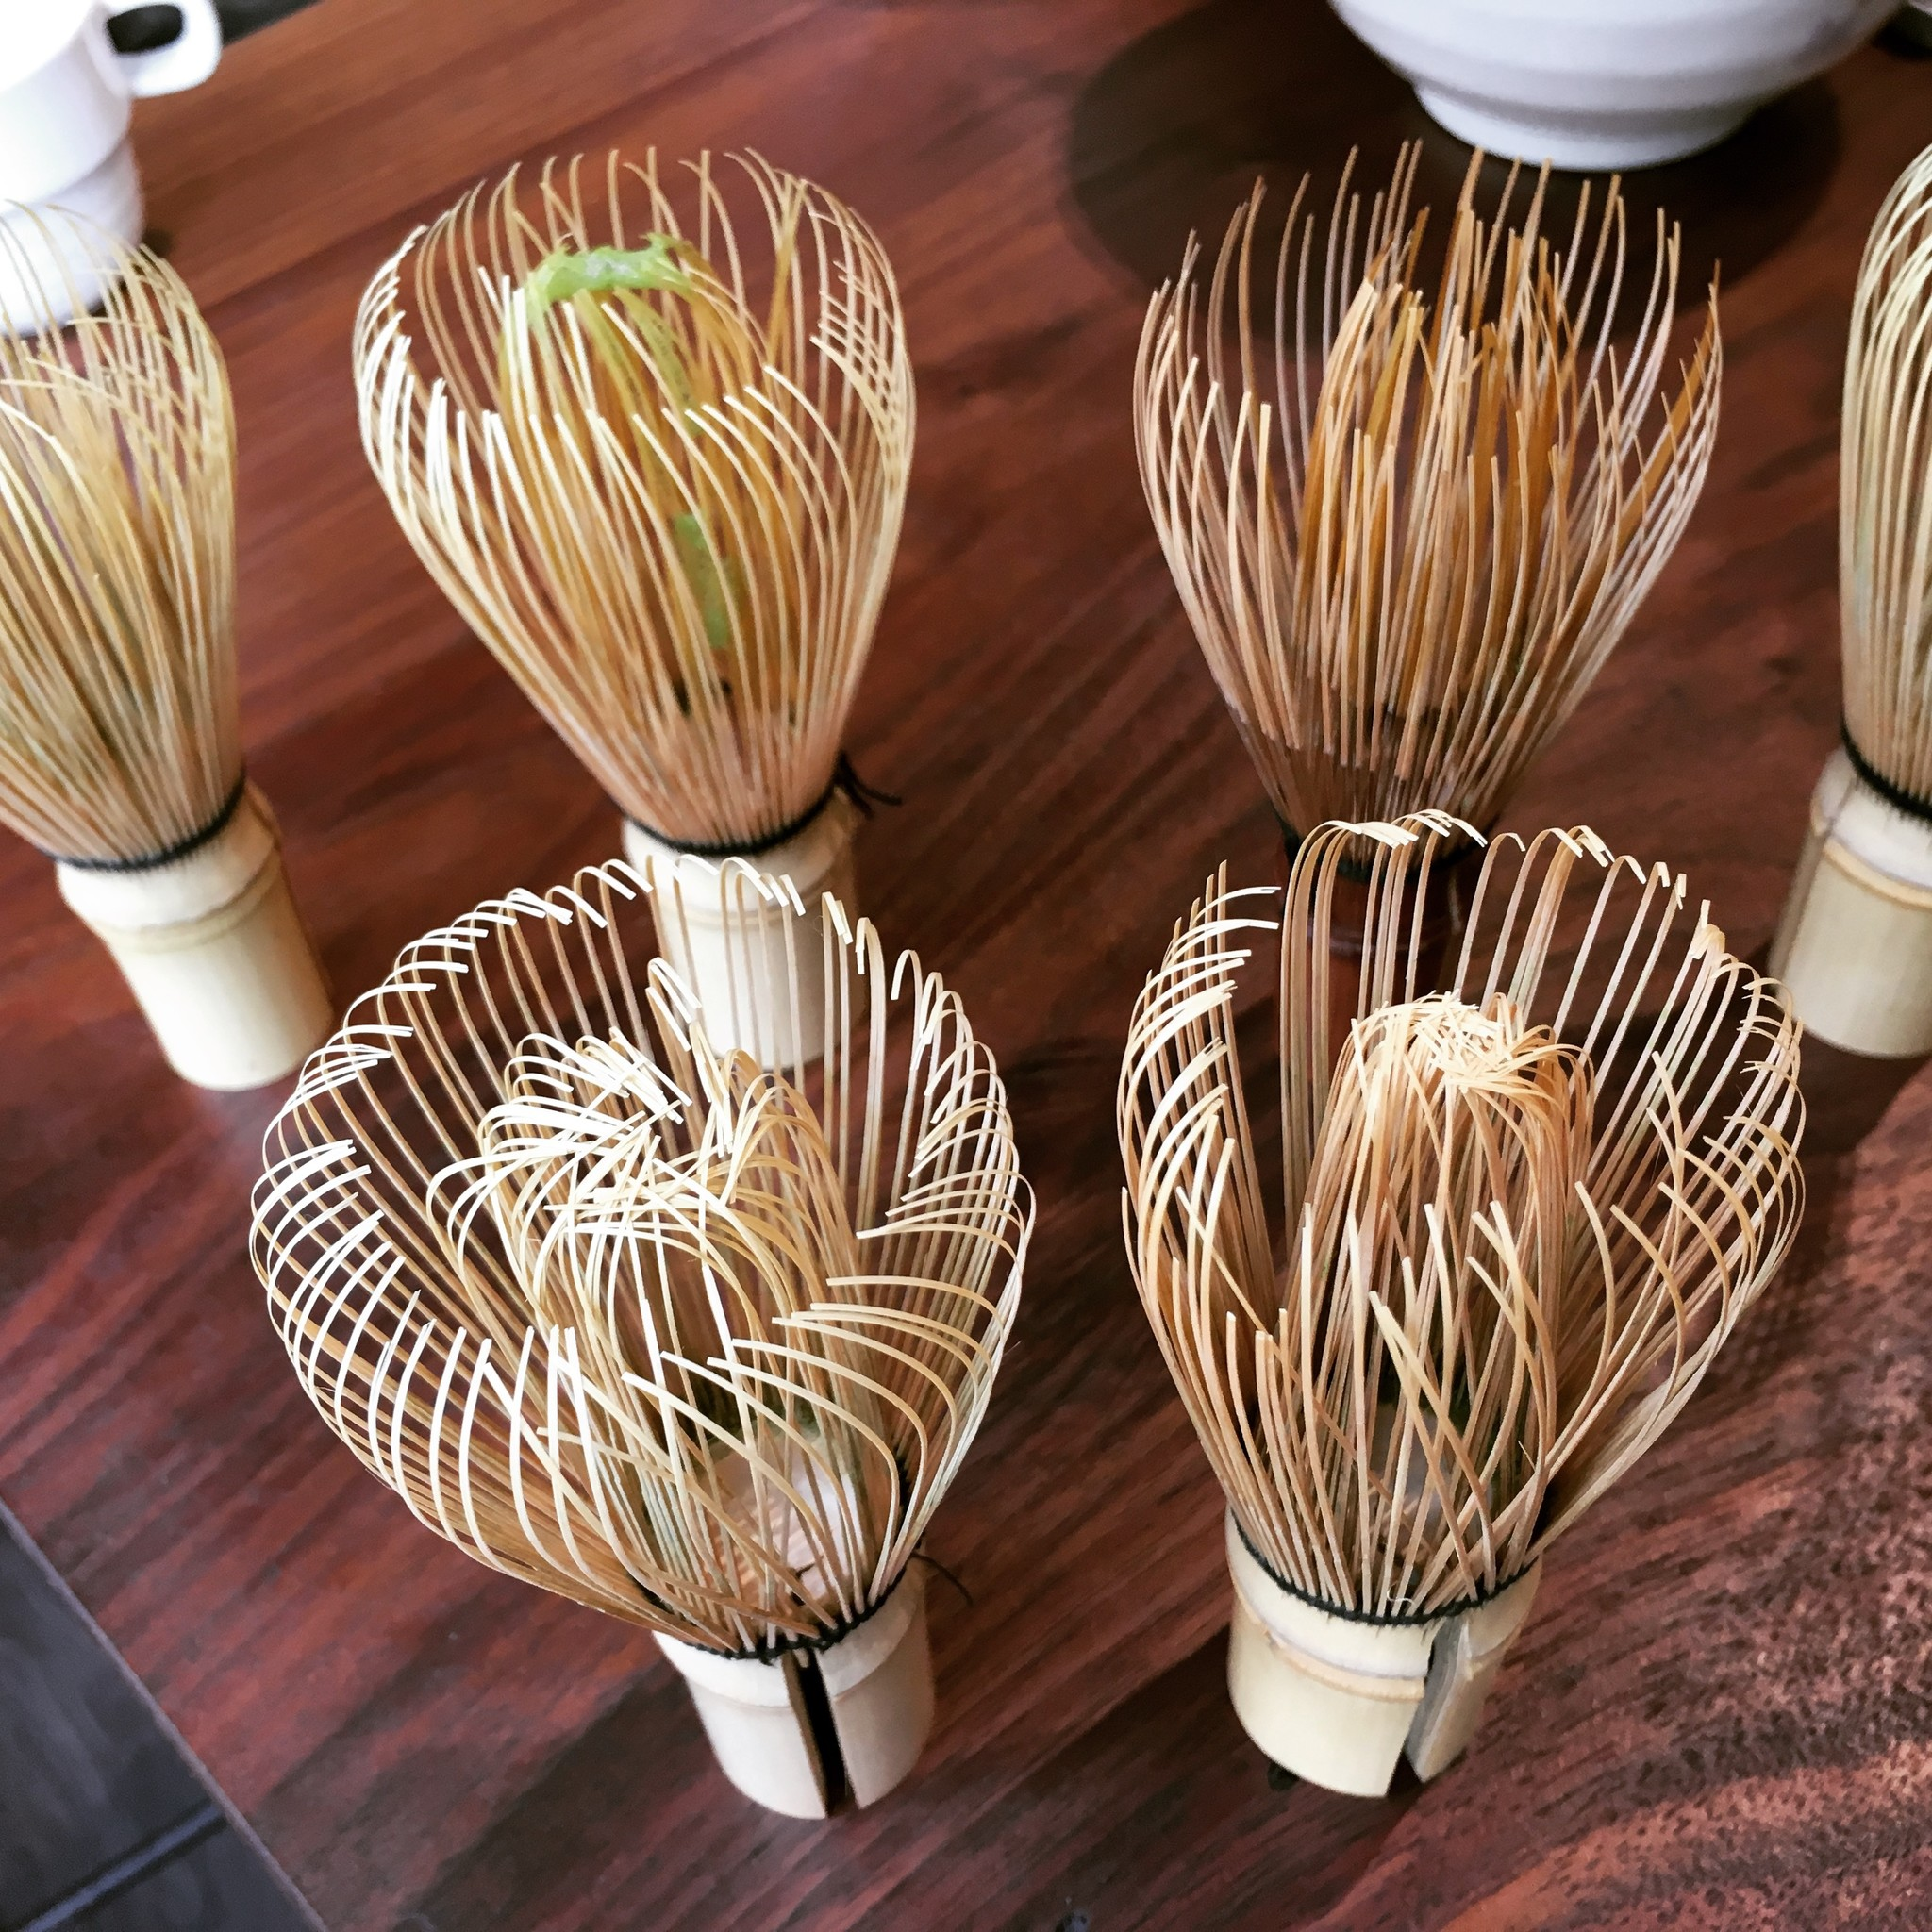 The making of a Matcha tea whisk (chasen)